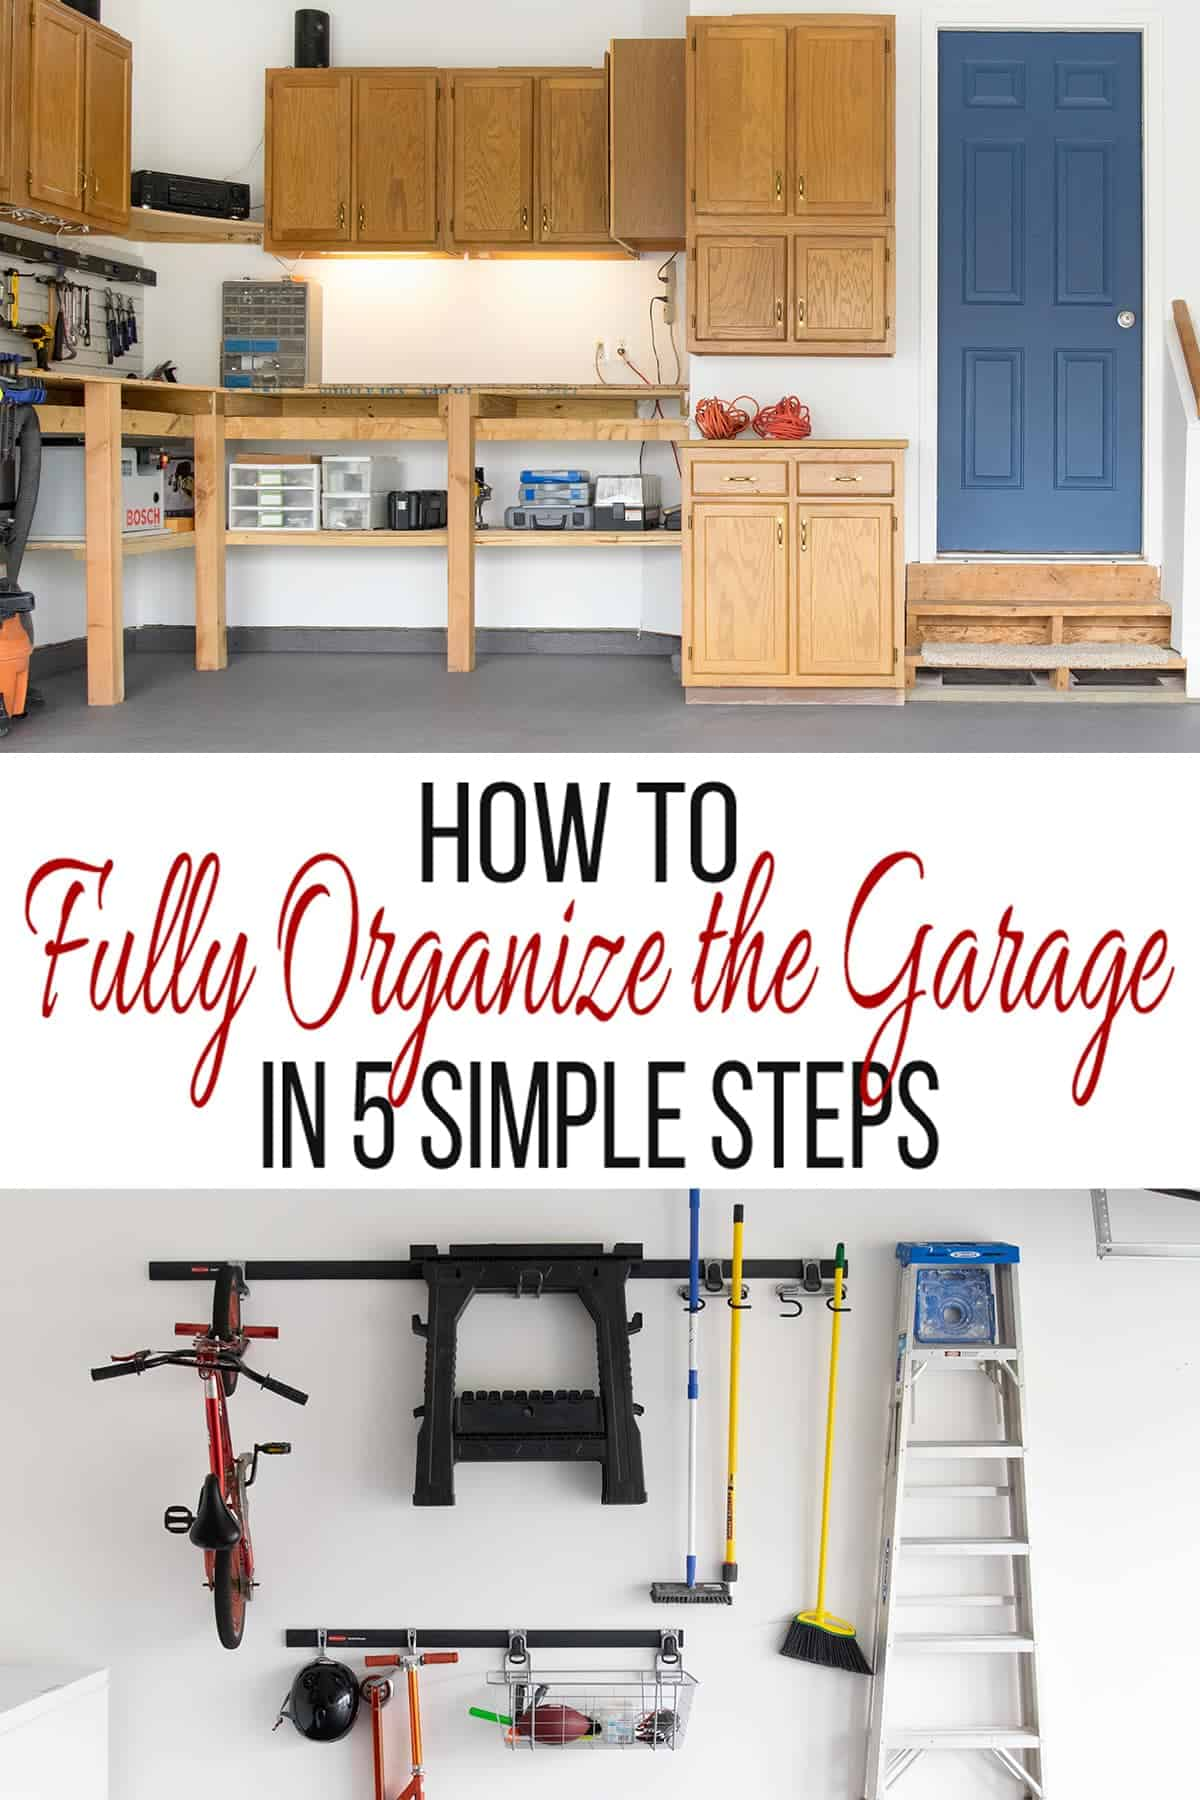 Garage Organization in 5 Simple Steps